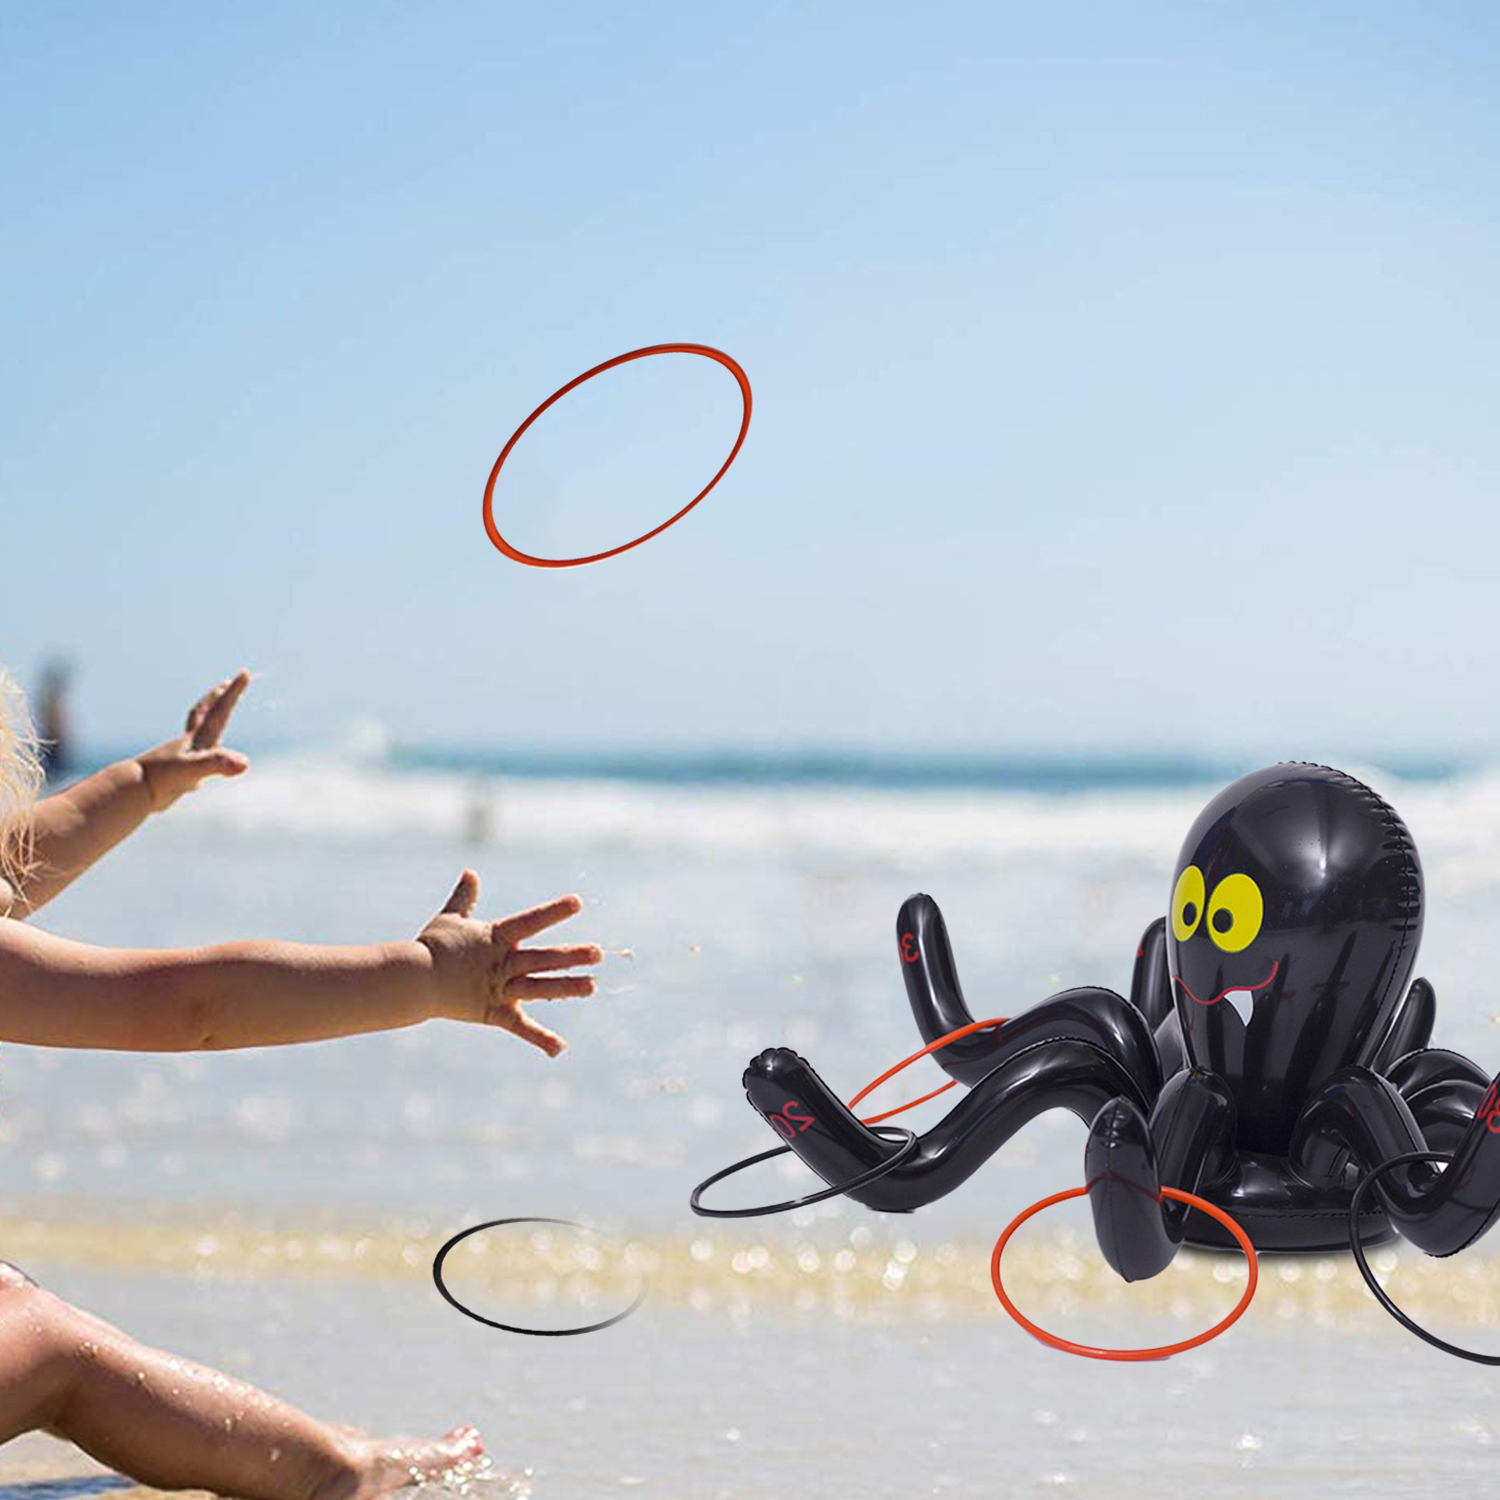 Portable Inflatable Spider Ring Toss Game Toy With 4PCS Rings For Kids Adults Halloween Home Garden School Beach Party Supplies